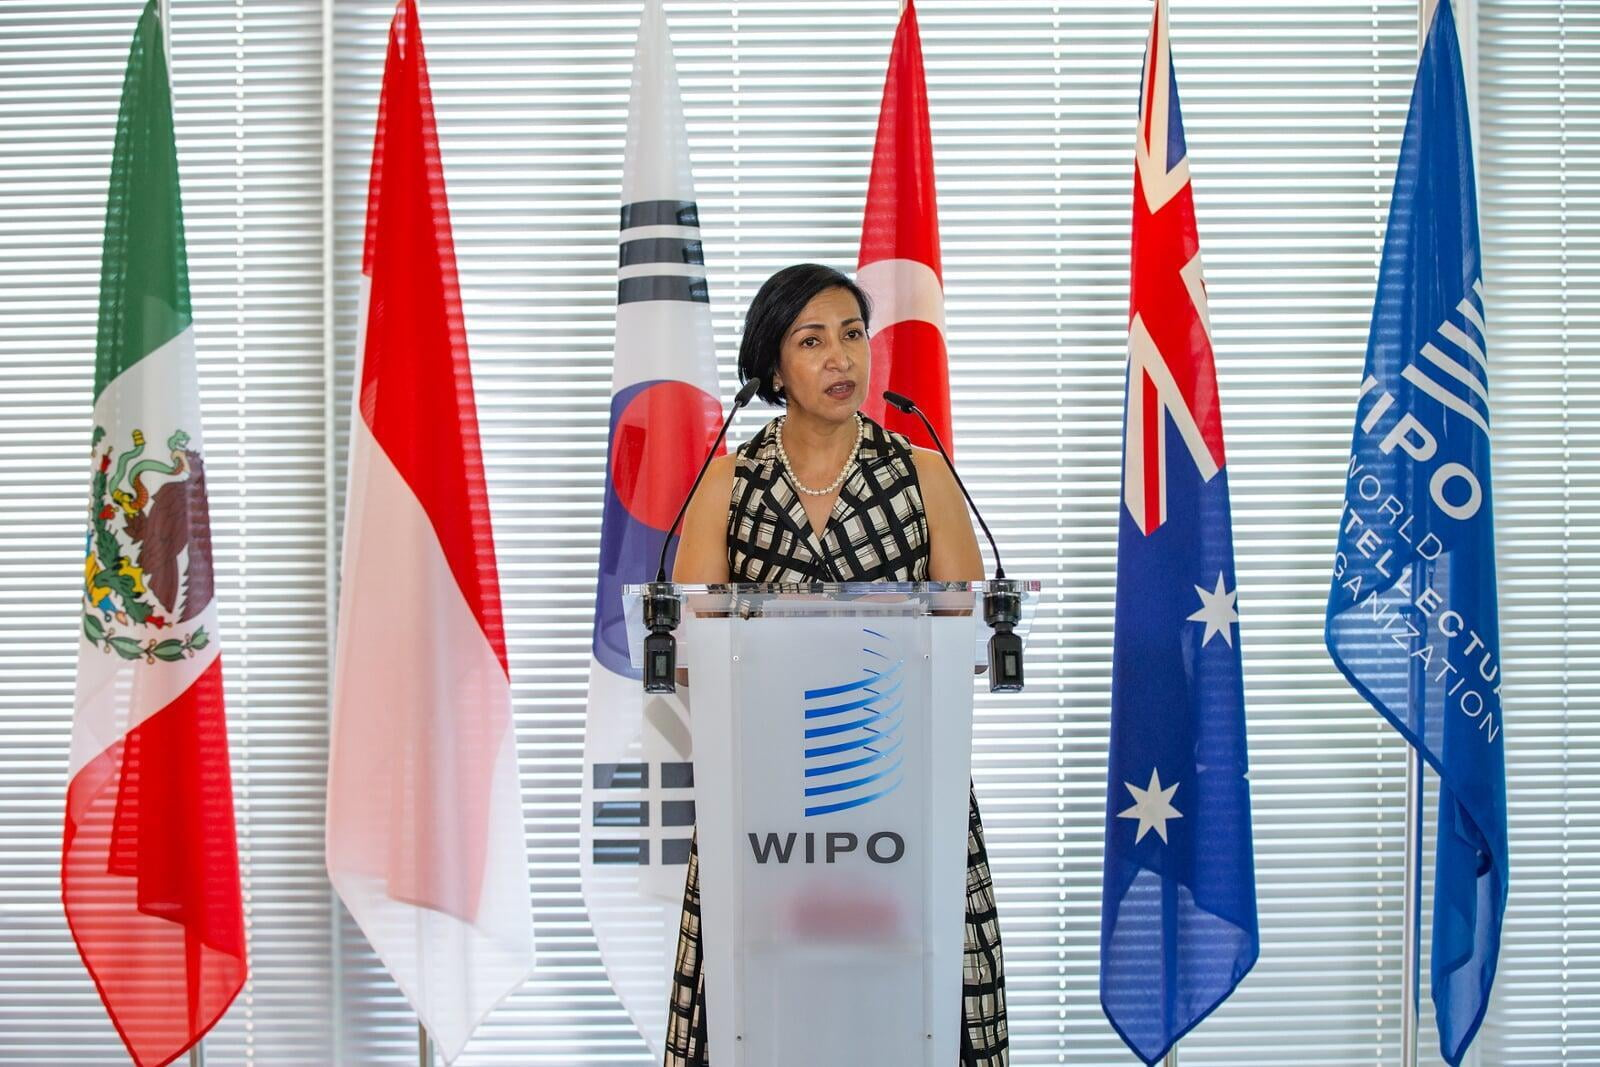 Director of the IMPI at an international WIPO conference.